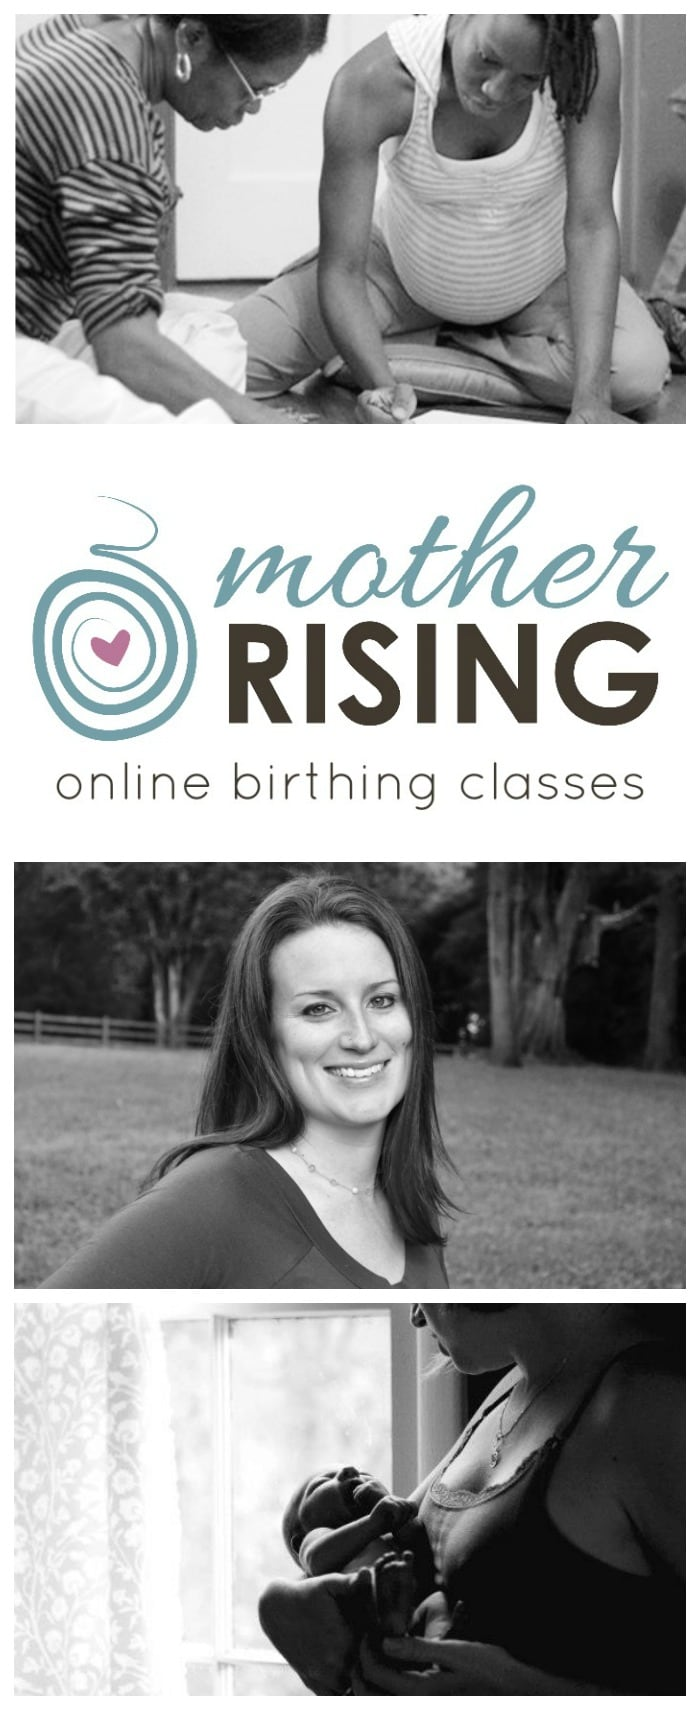 Are you looking for online birthing classes that prepare for the unknowns of pregnancy, childbirth and postpartum? Are you looking for a class that will help you cope with the pain and intensity of childbirth? Are you afraid of what's to come? I have the perfect online birthing class for you!